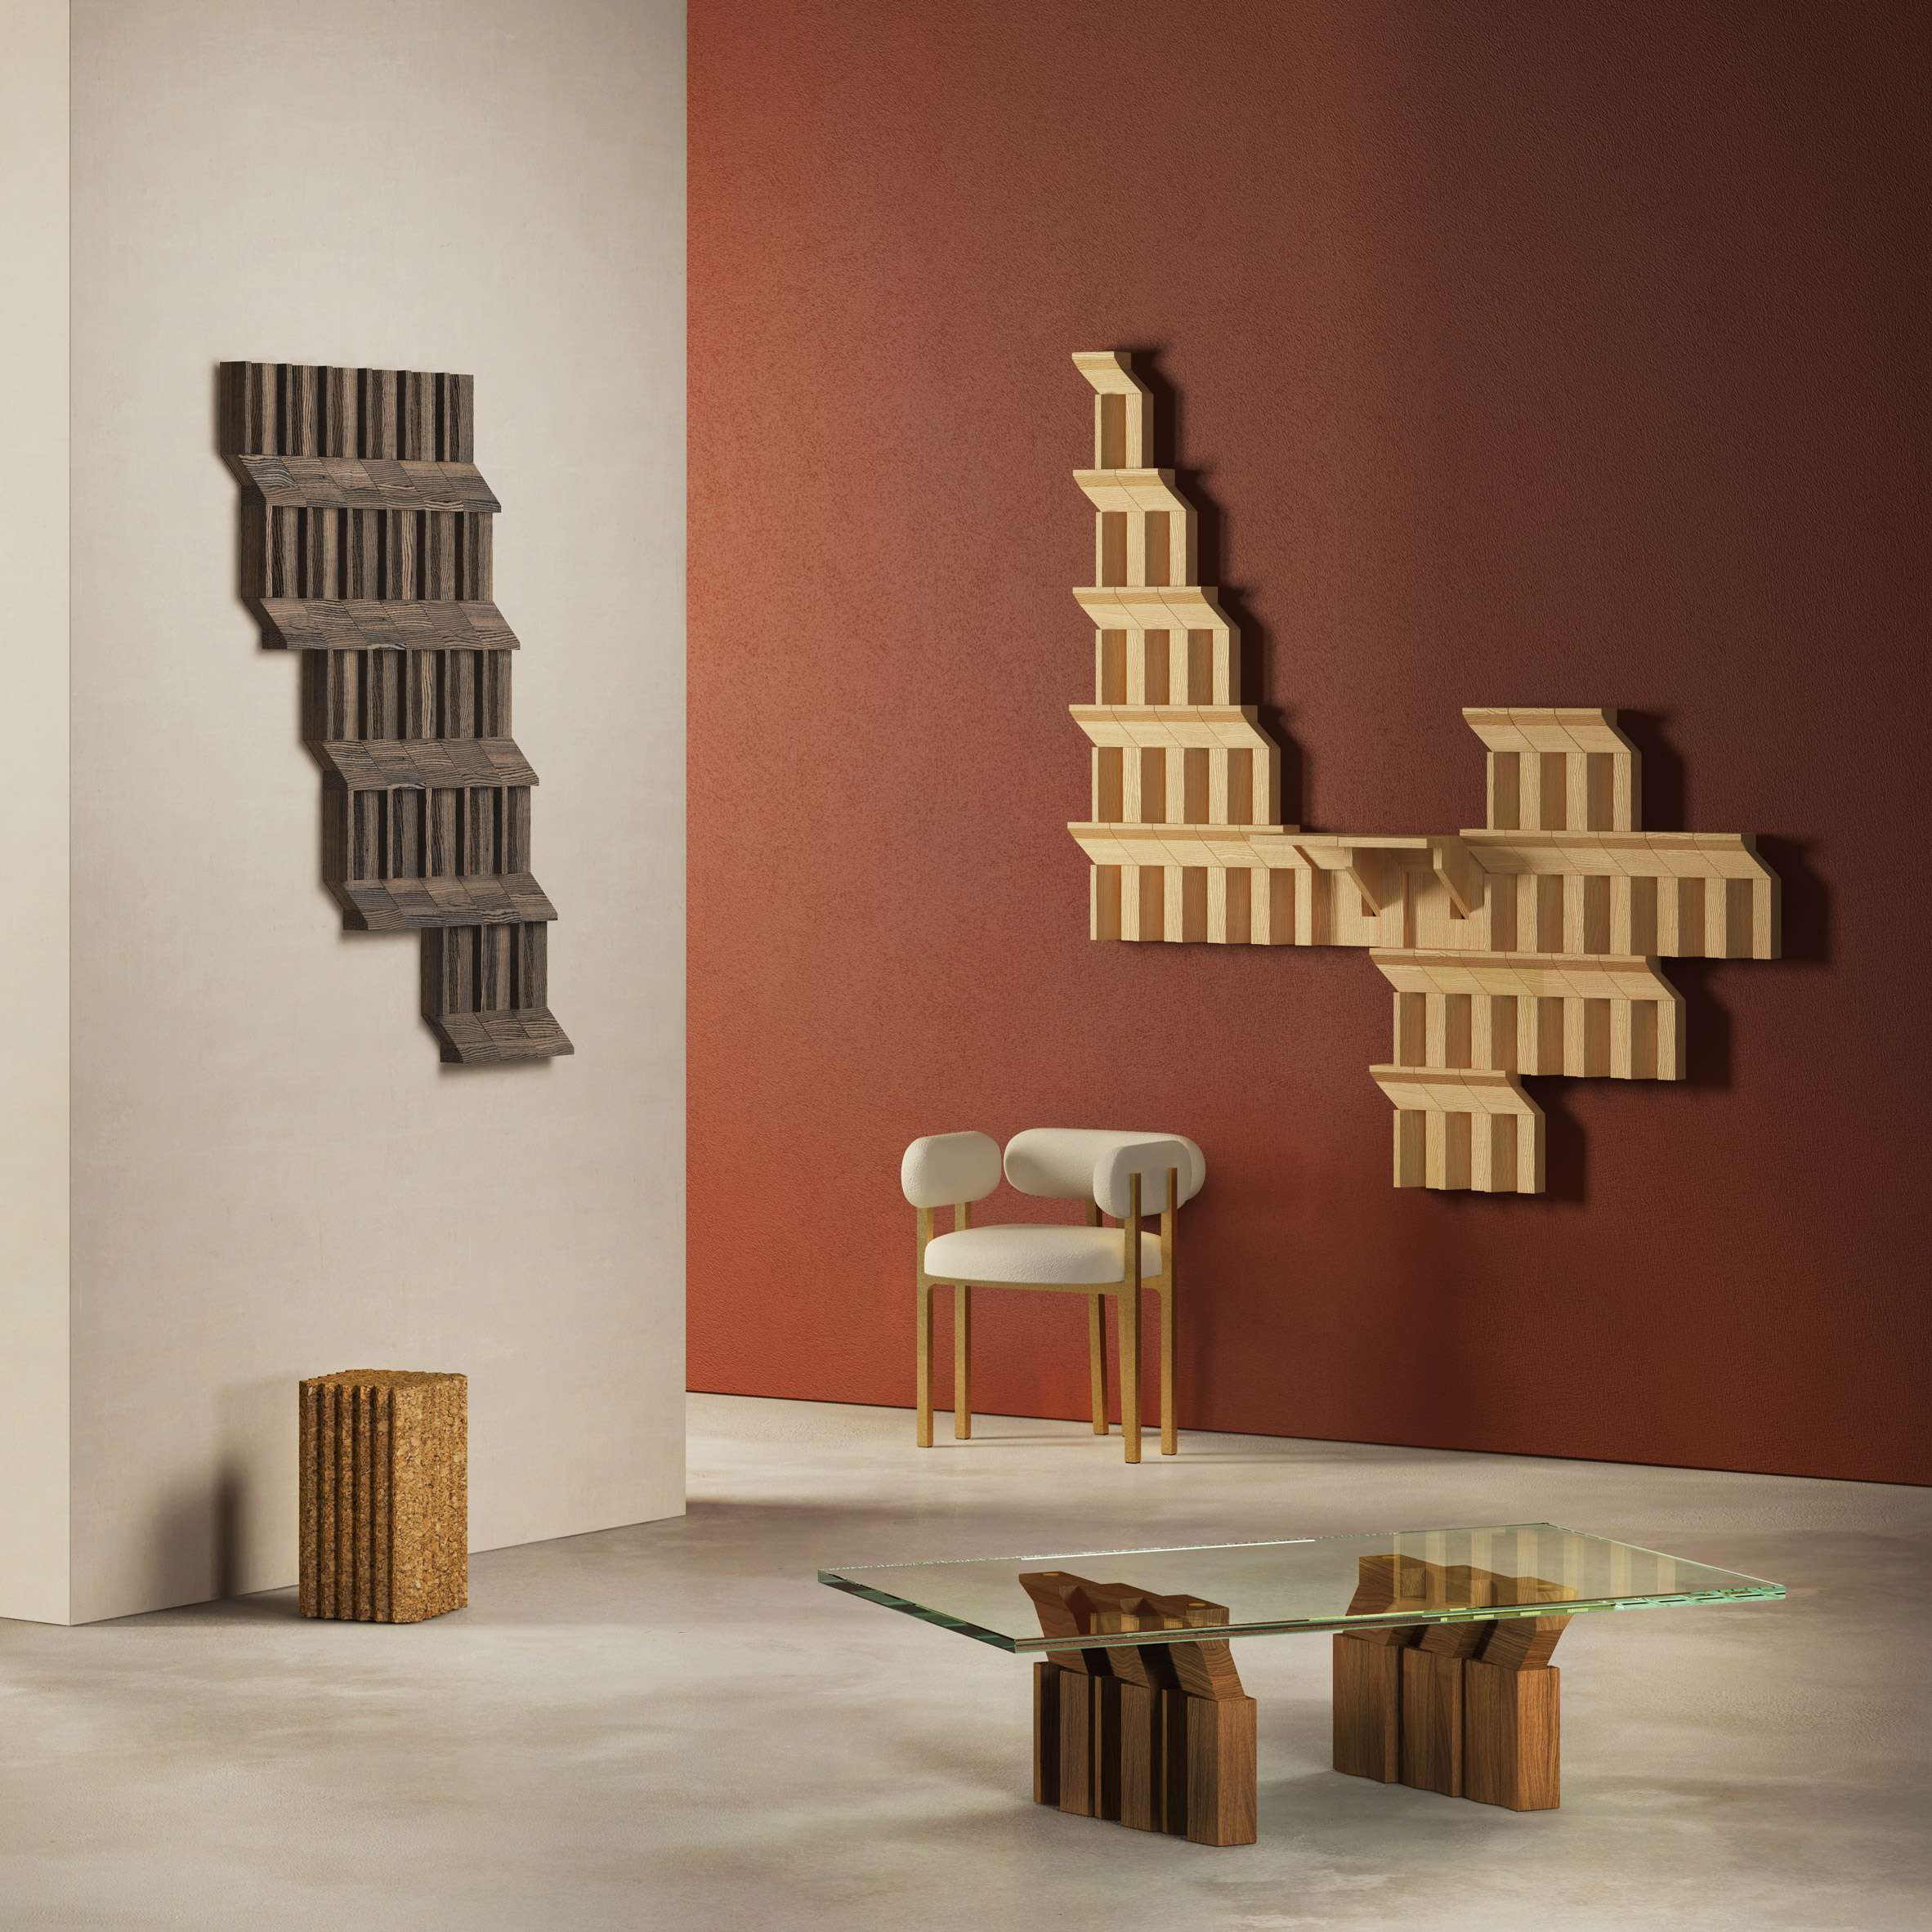 Furniture by Charles Kalpakian at the Collectible design fair as featured in Dezeen Events Guide May